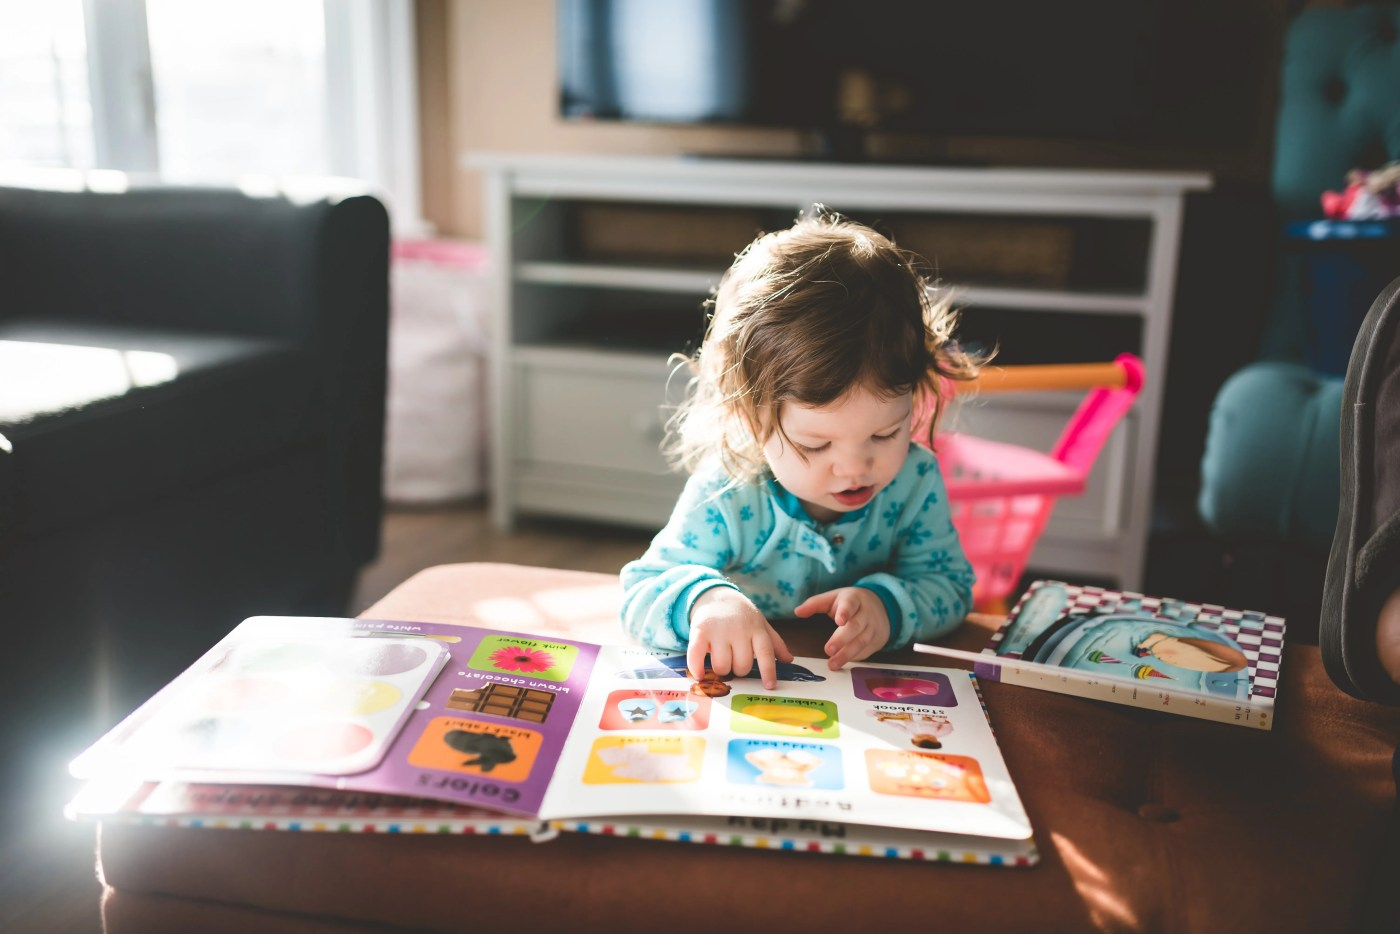 A child reading a book unassisted